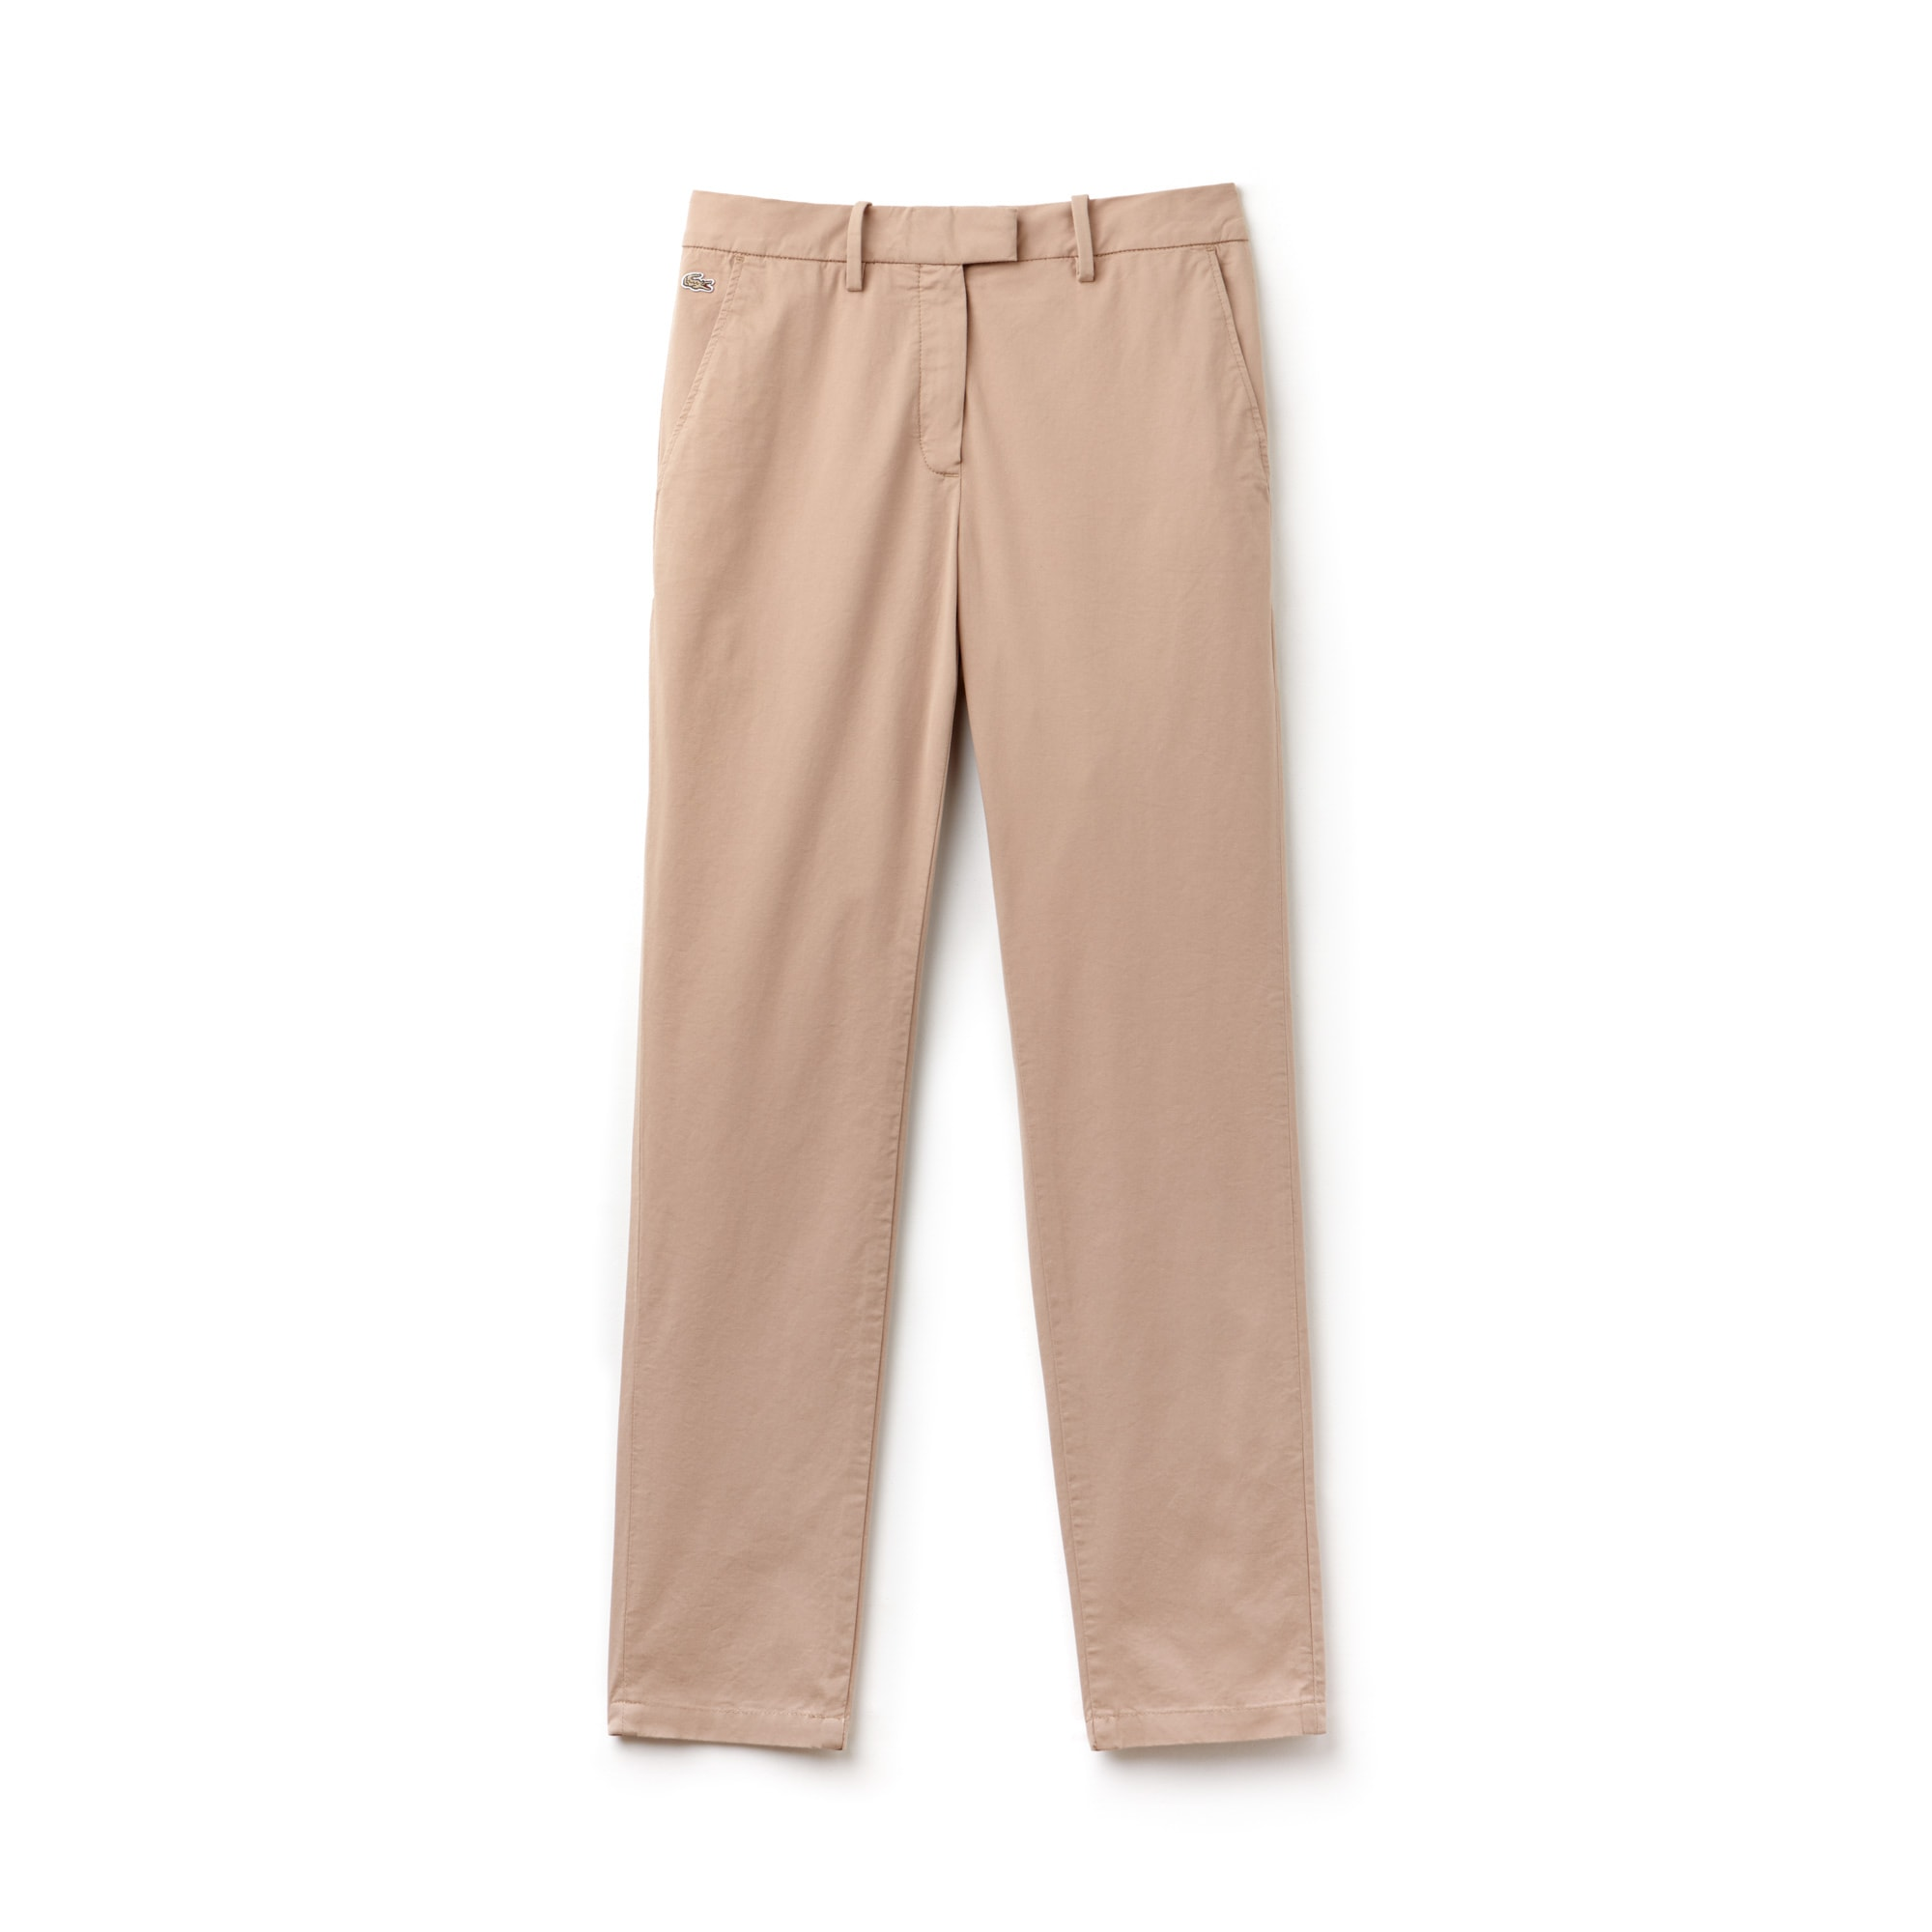 Women's Regular Fit Stretch Gabardine Pleated Chino Pants